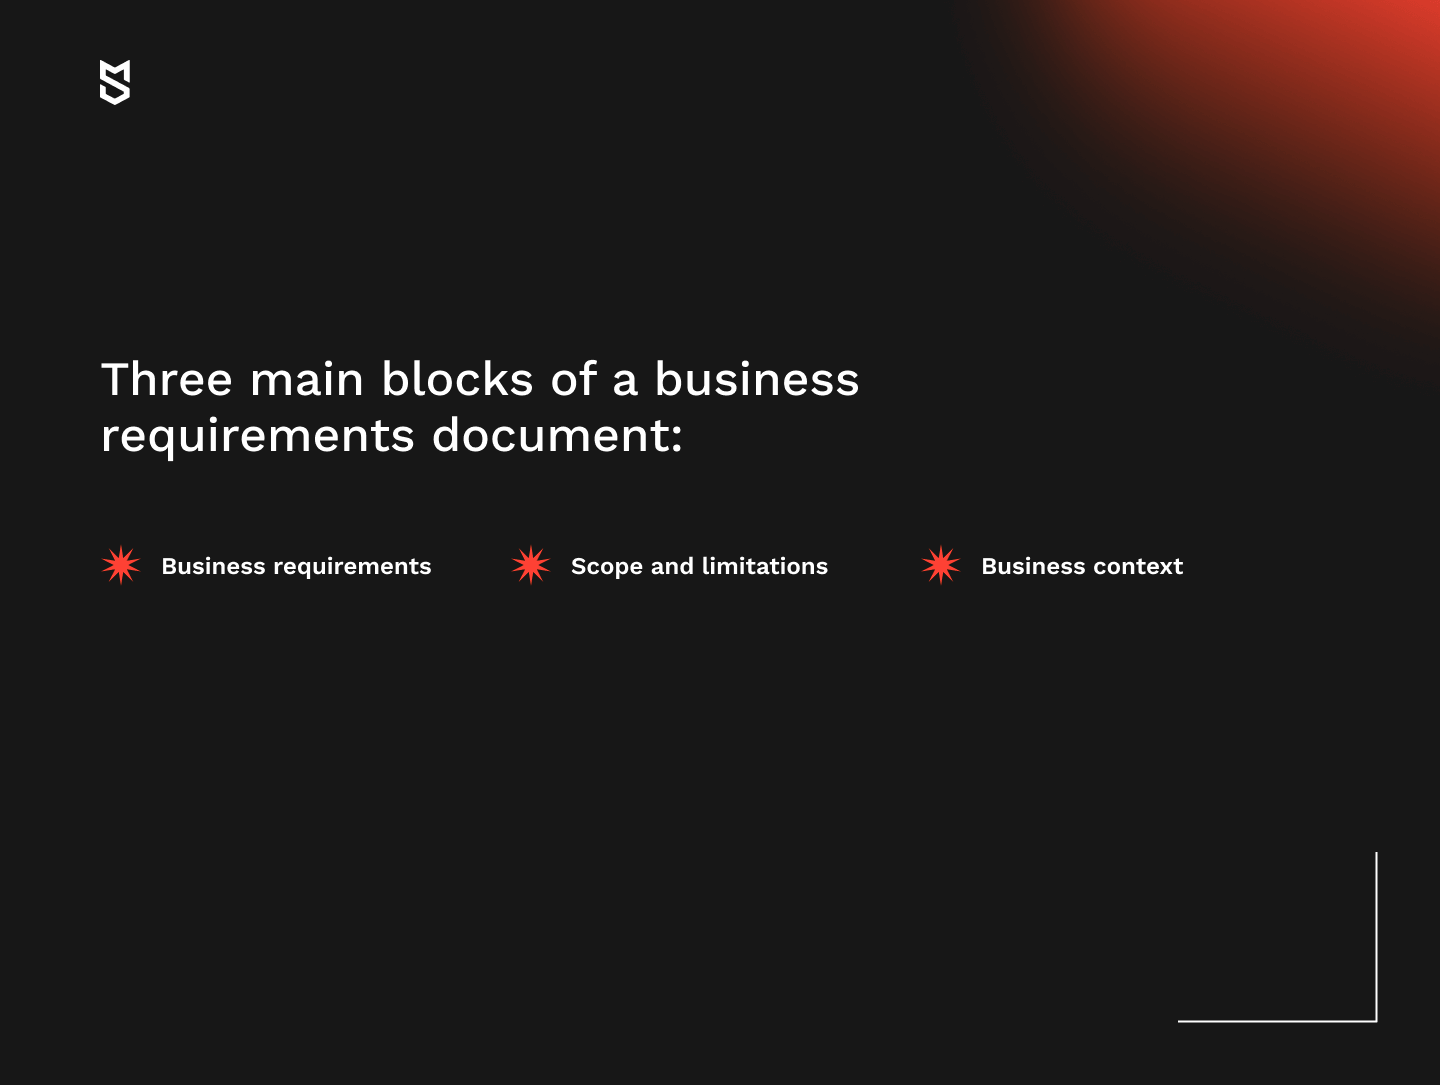 Three main blocks of a business requirements document